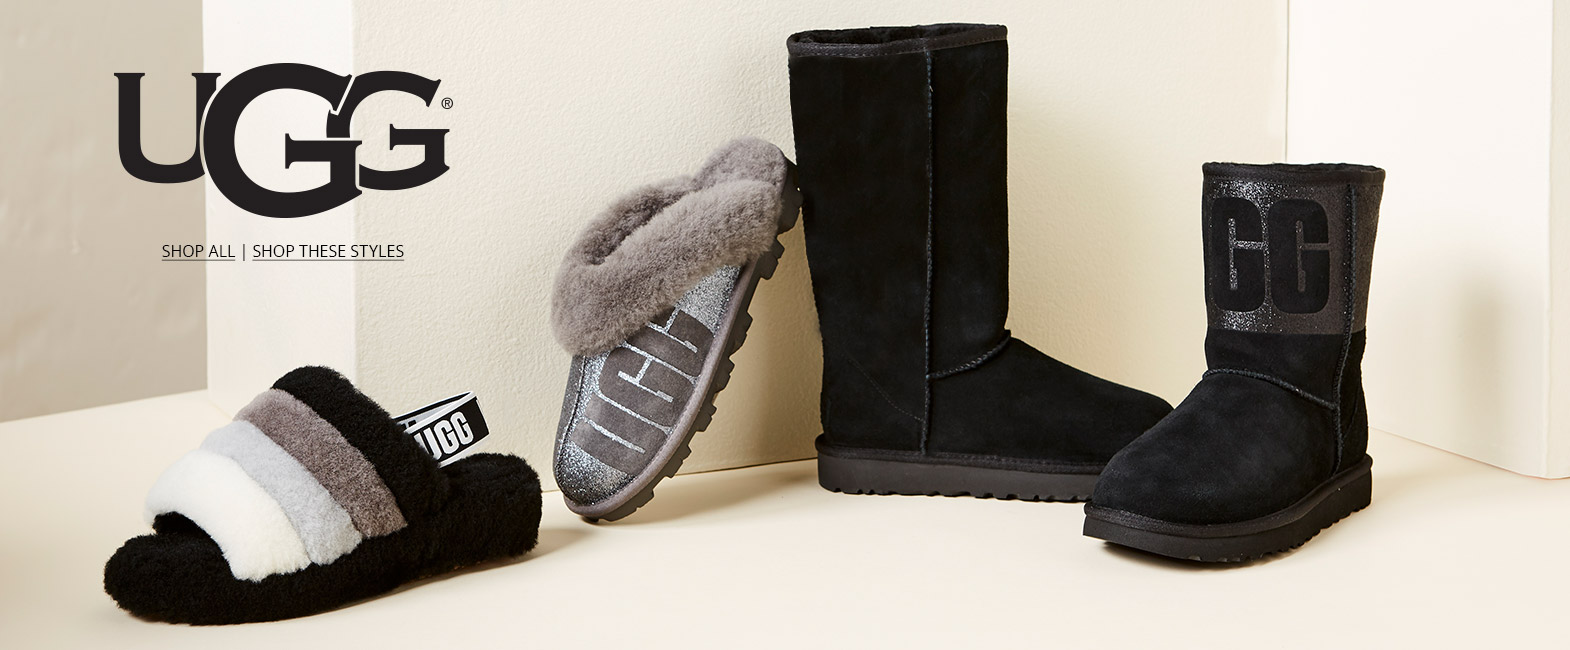 Assortment of UGG shoes against a light colored wall